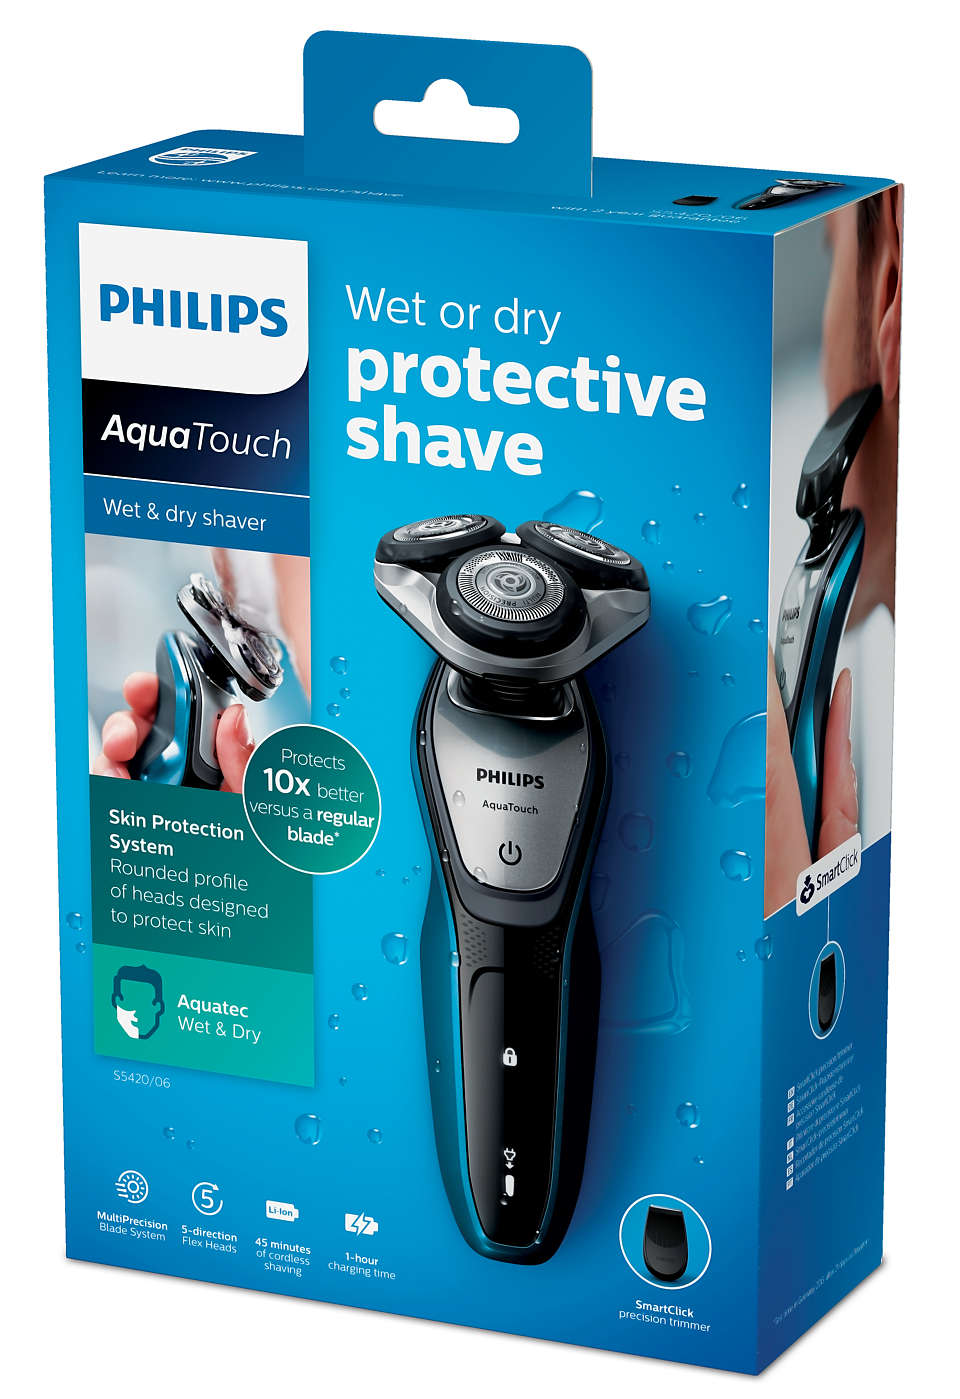 Philips AquaTouch Wet and dry electric shaver S5420